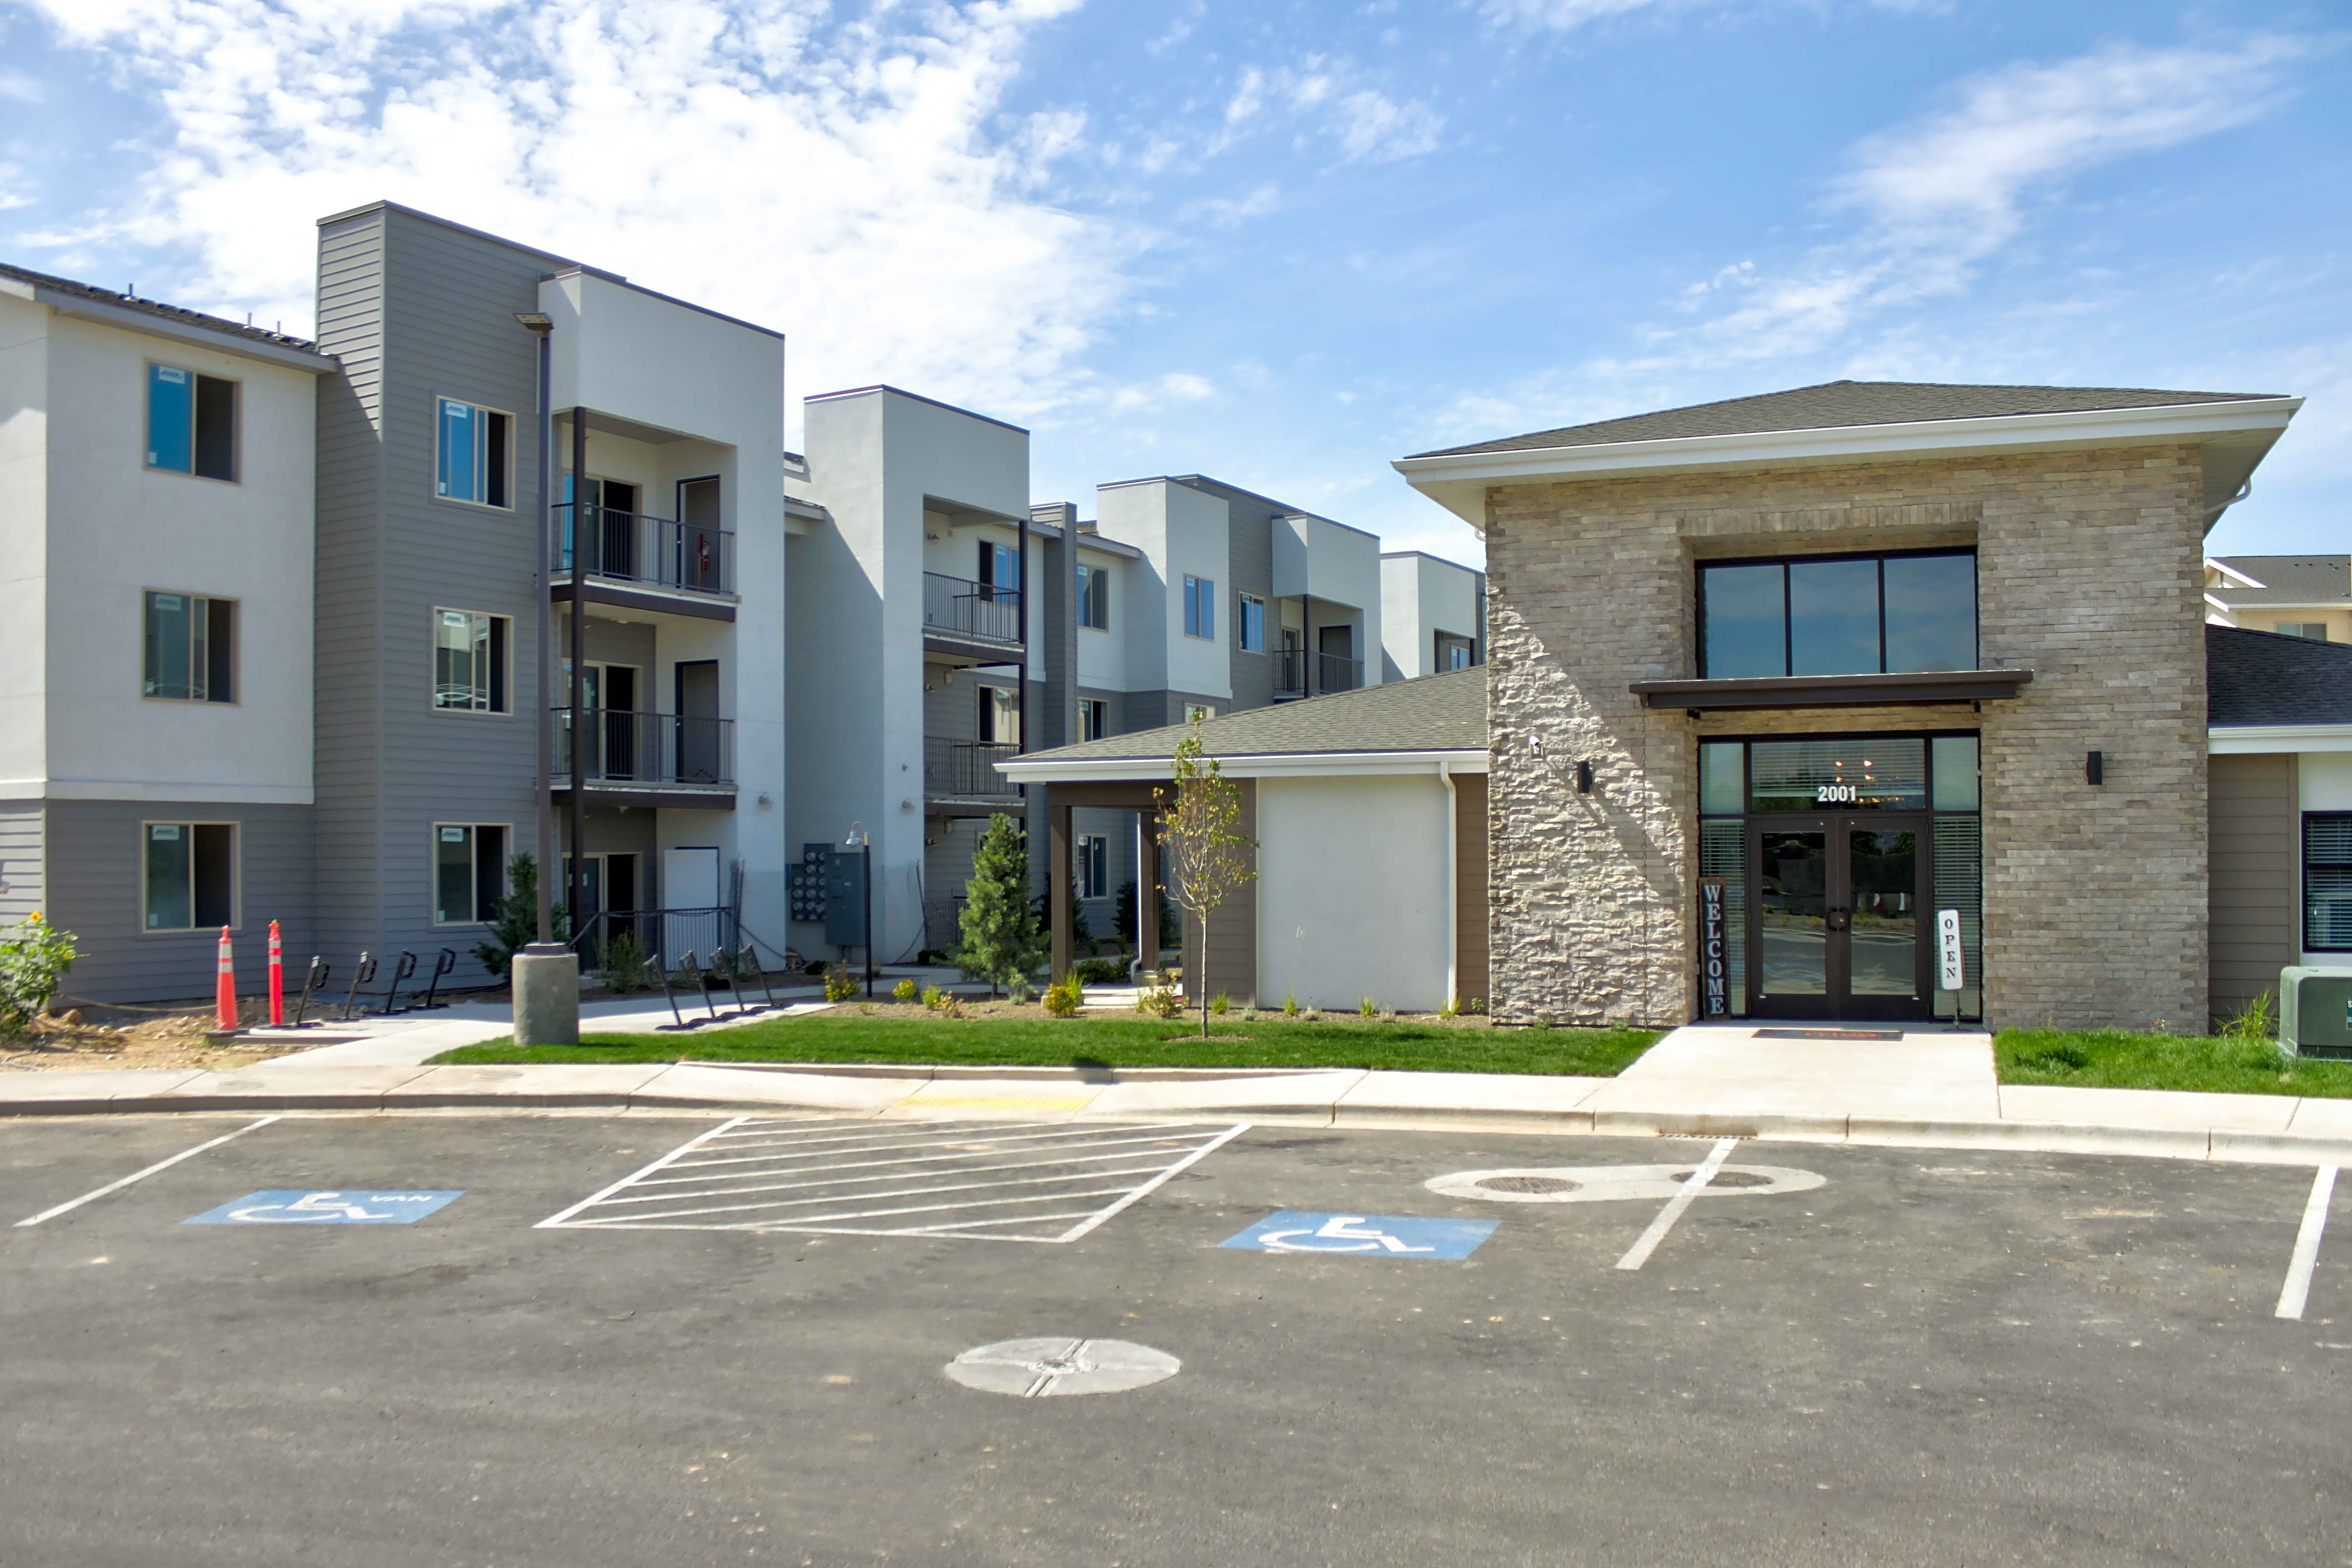 Apartments Near Boise State Arrive Skyline for Boise State University Students in Boise, ID